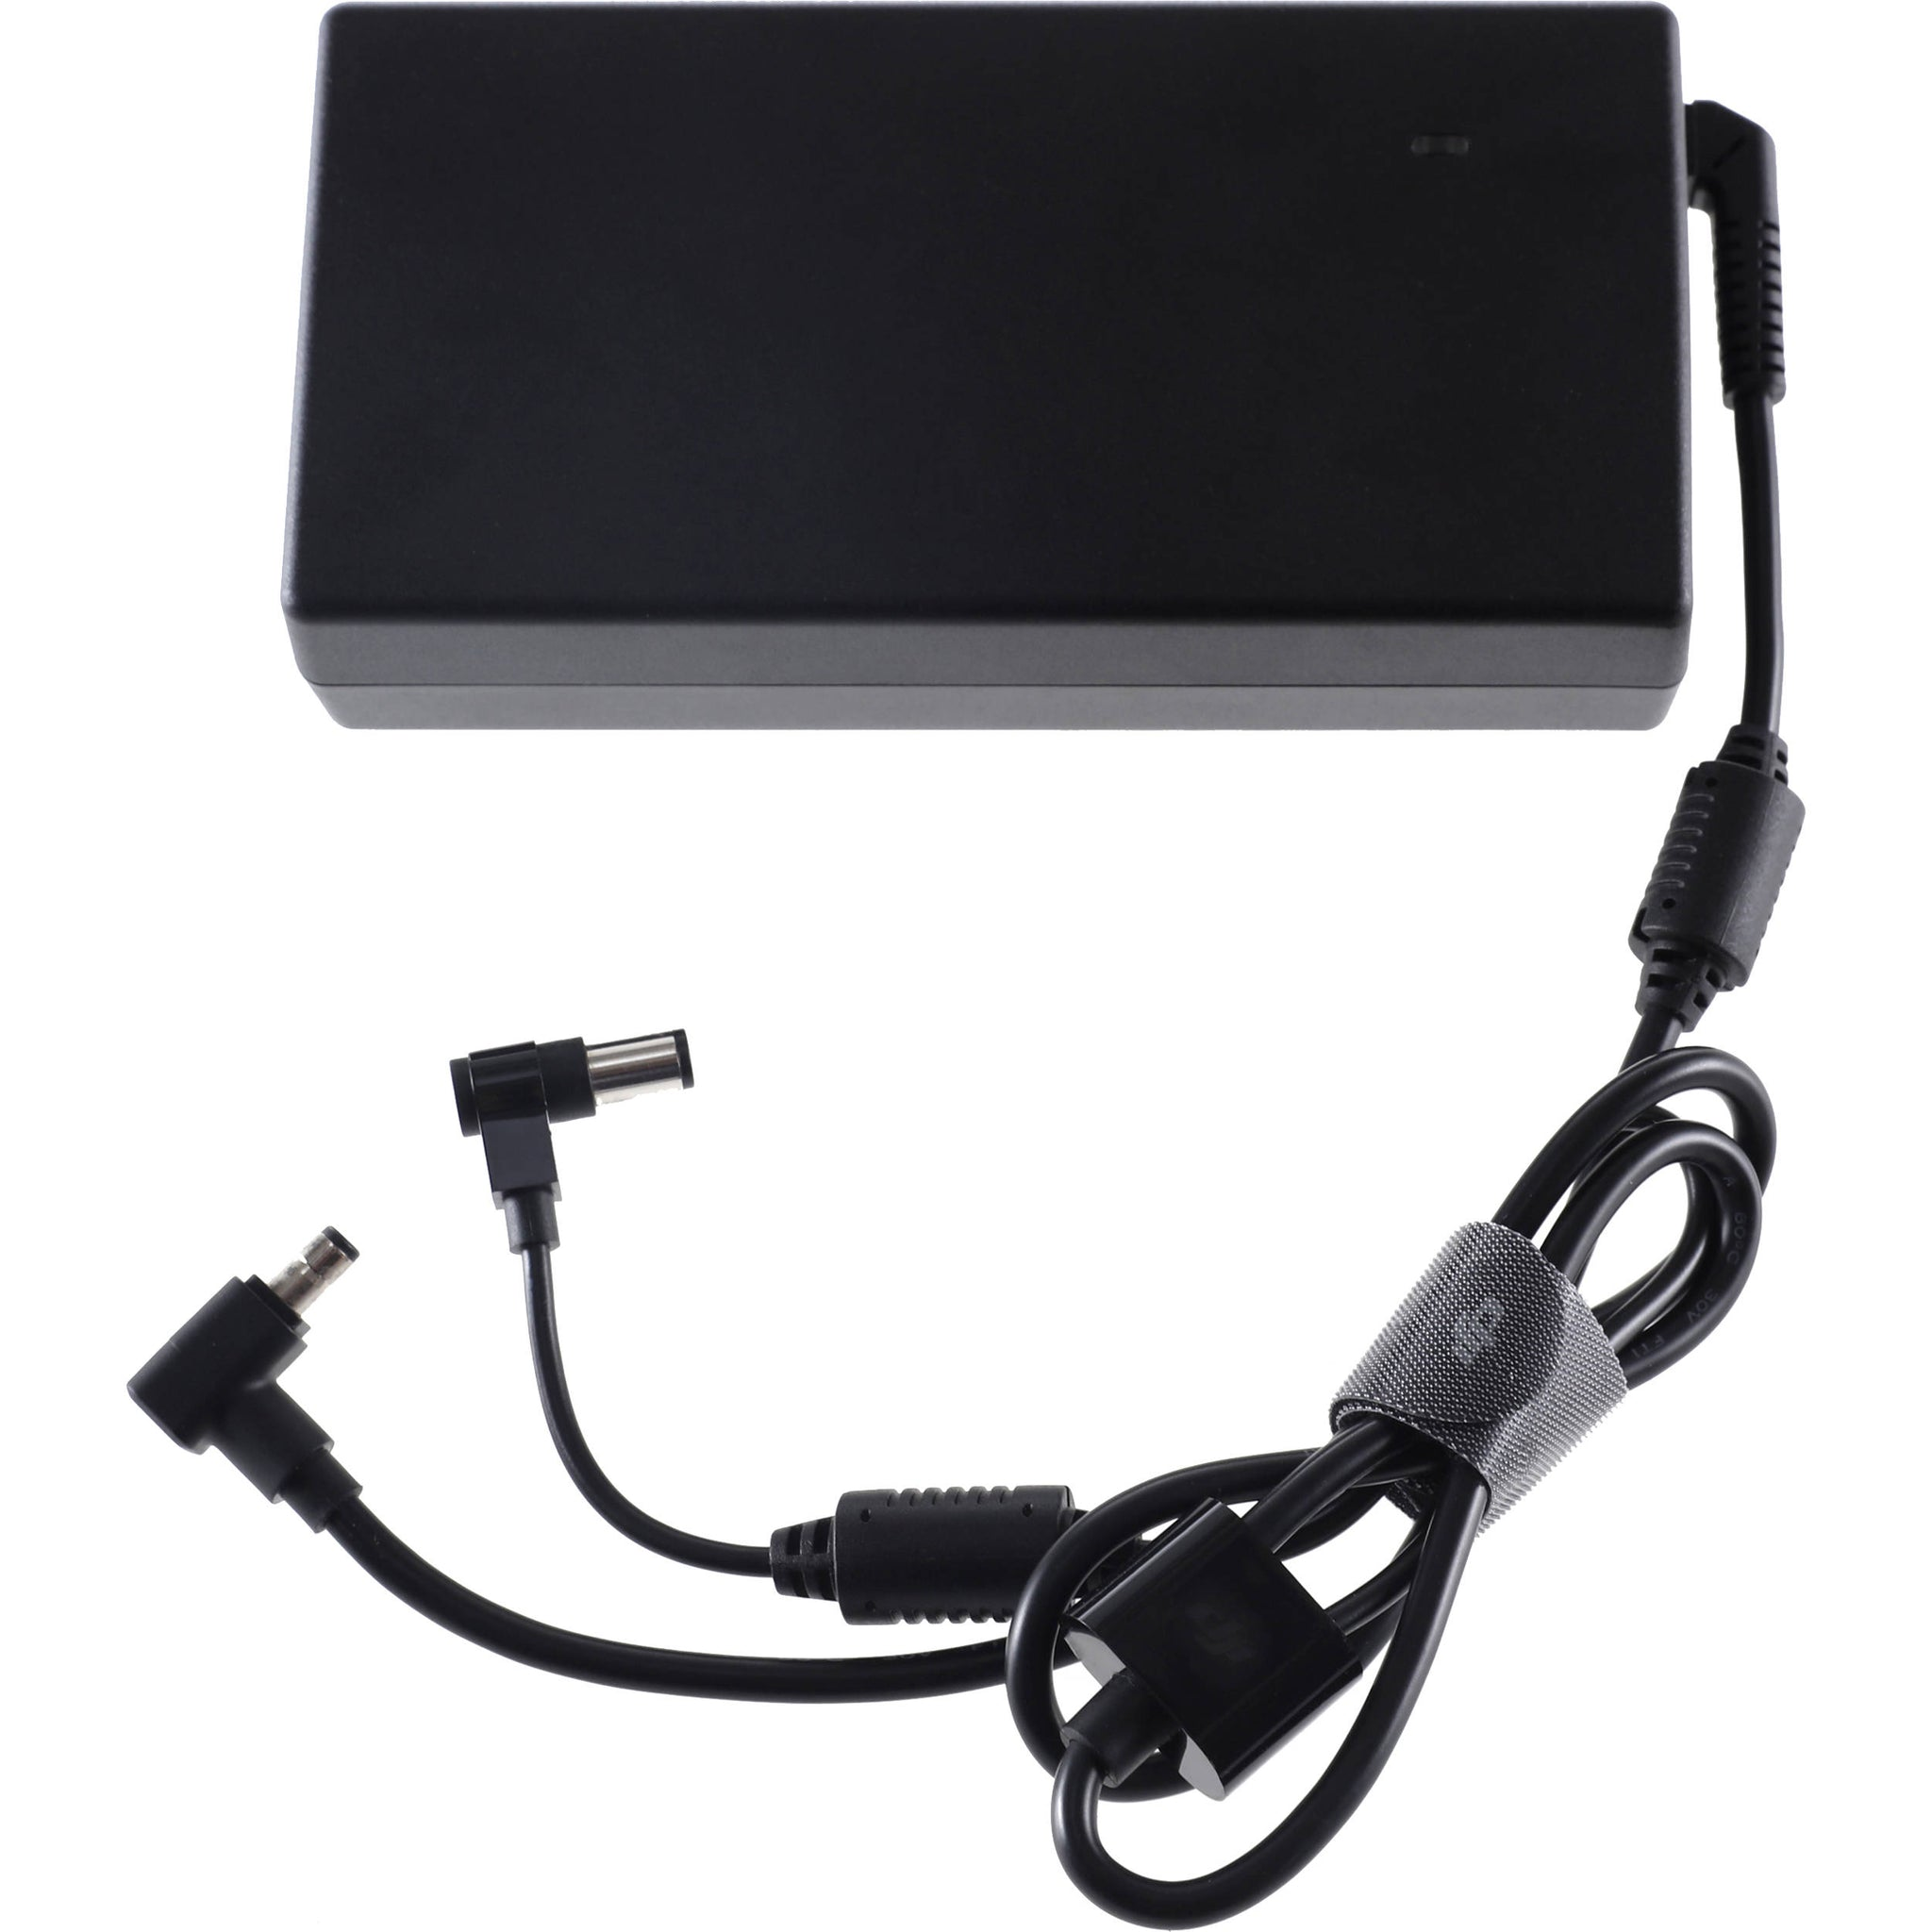 DJI Inspire 2 - 180W Power Adapter